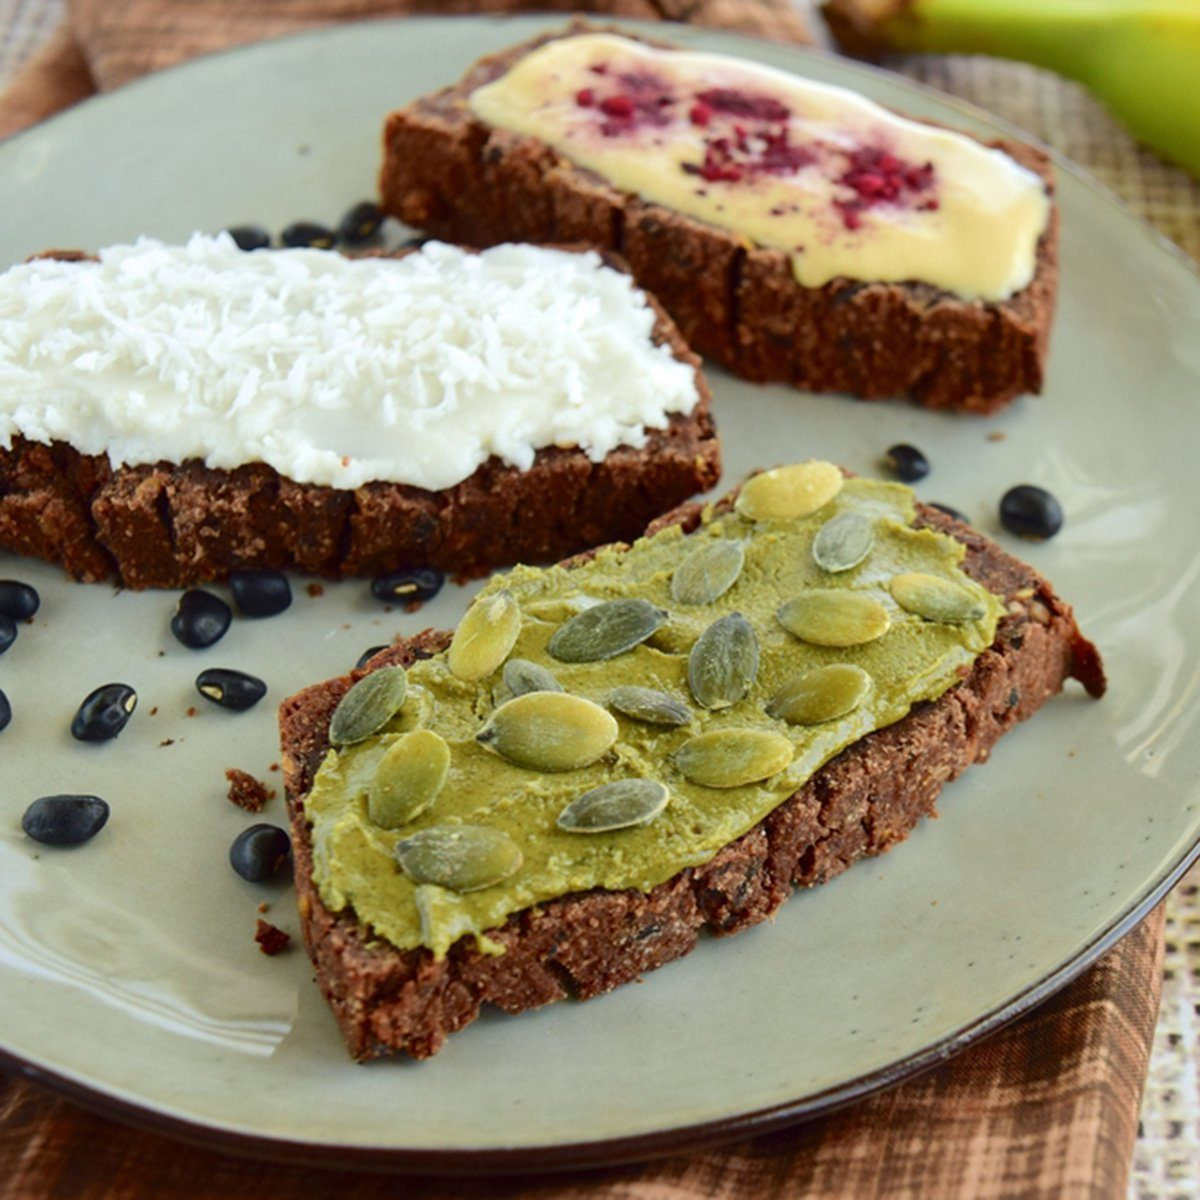 Sliced black bean bread with spread and topping